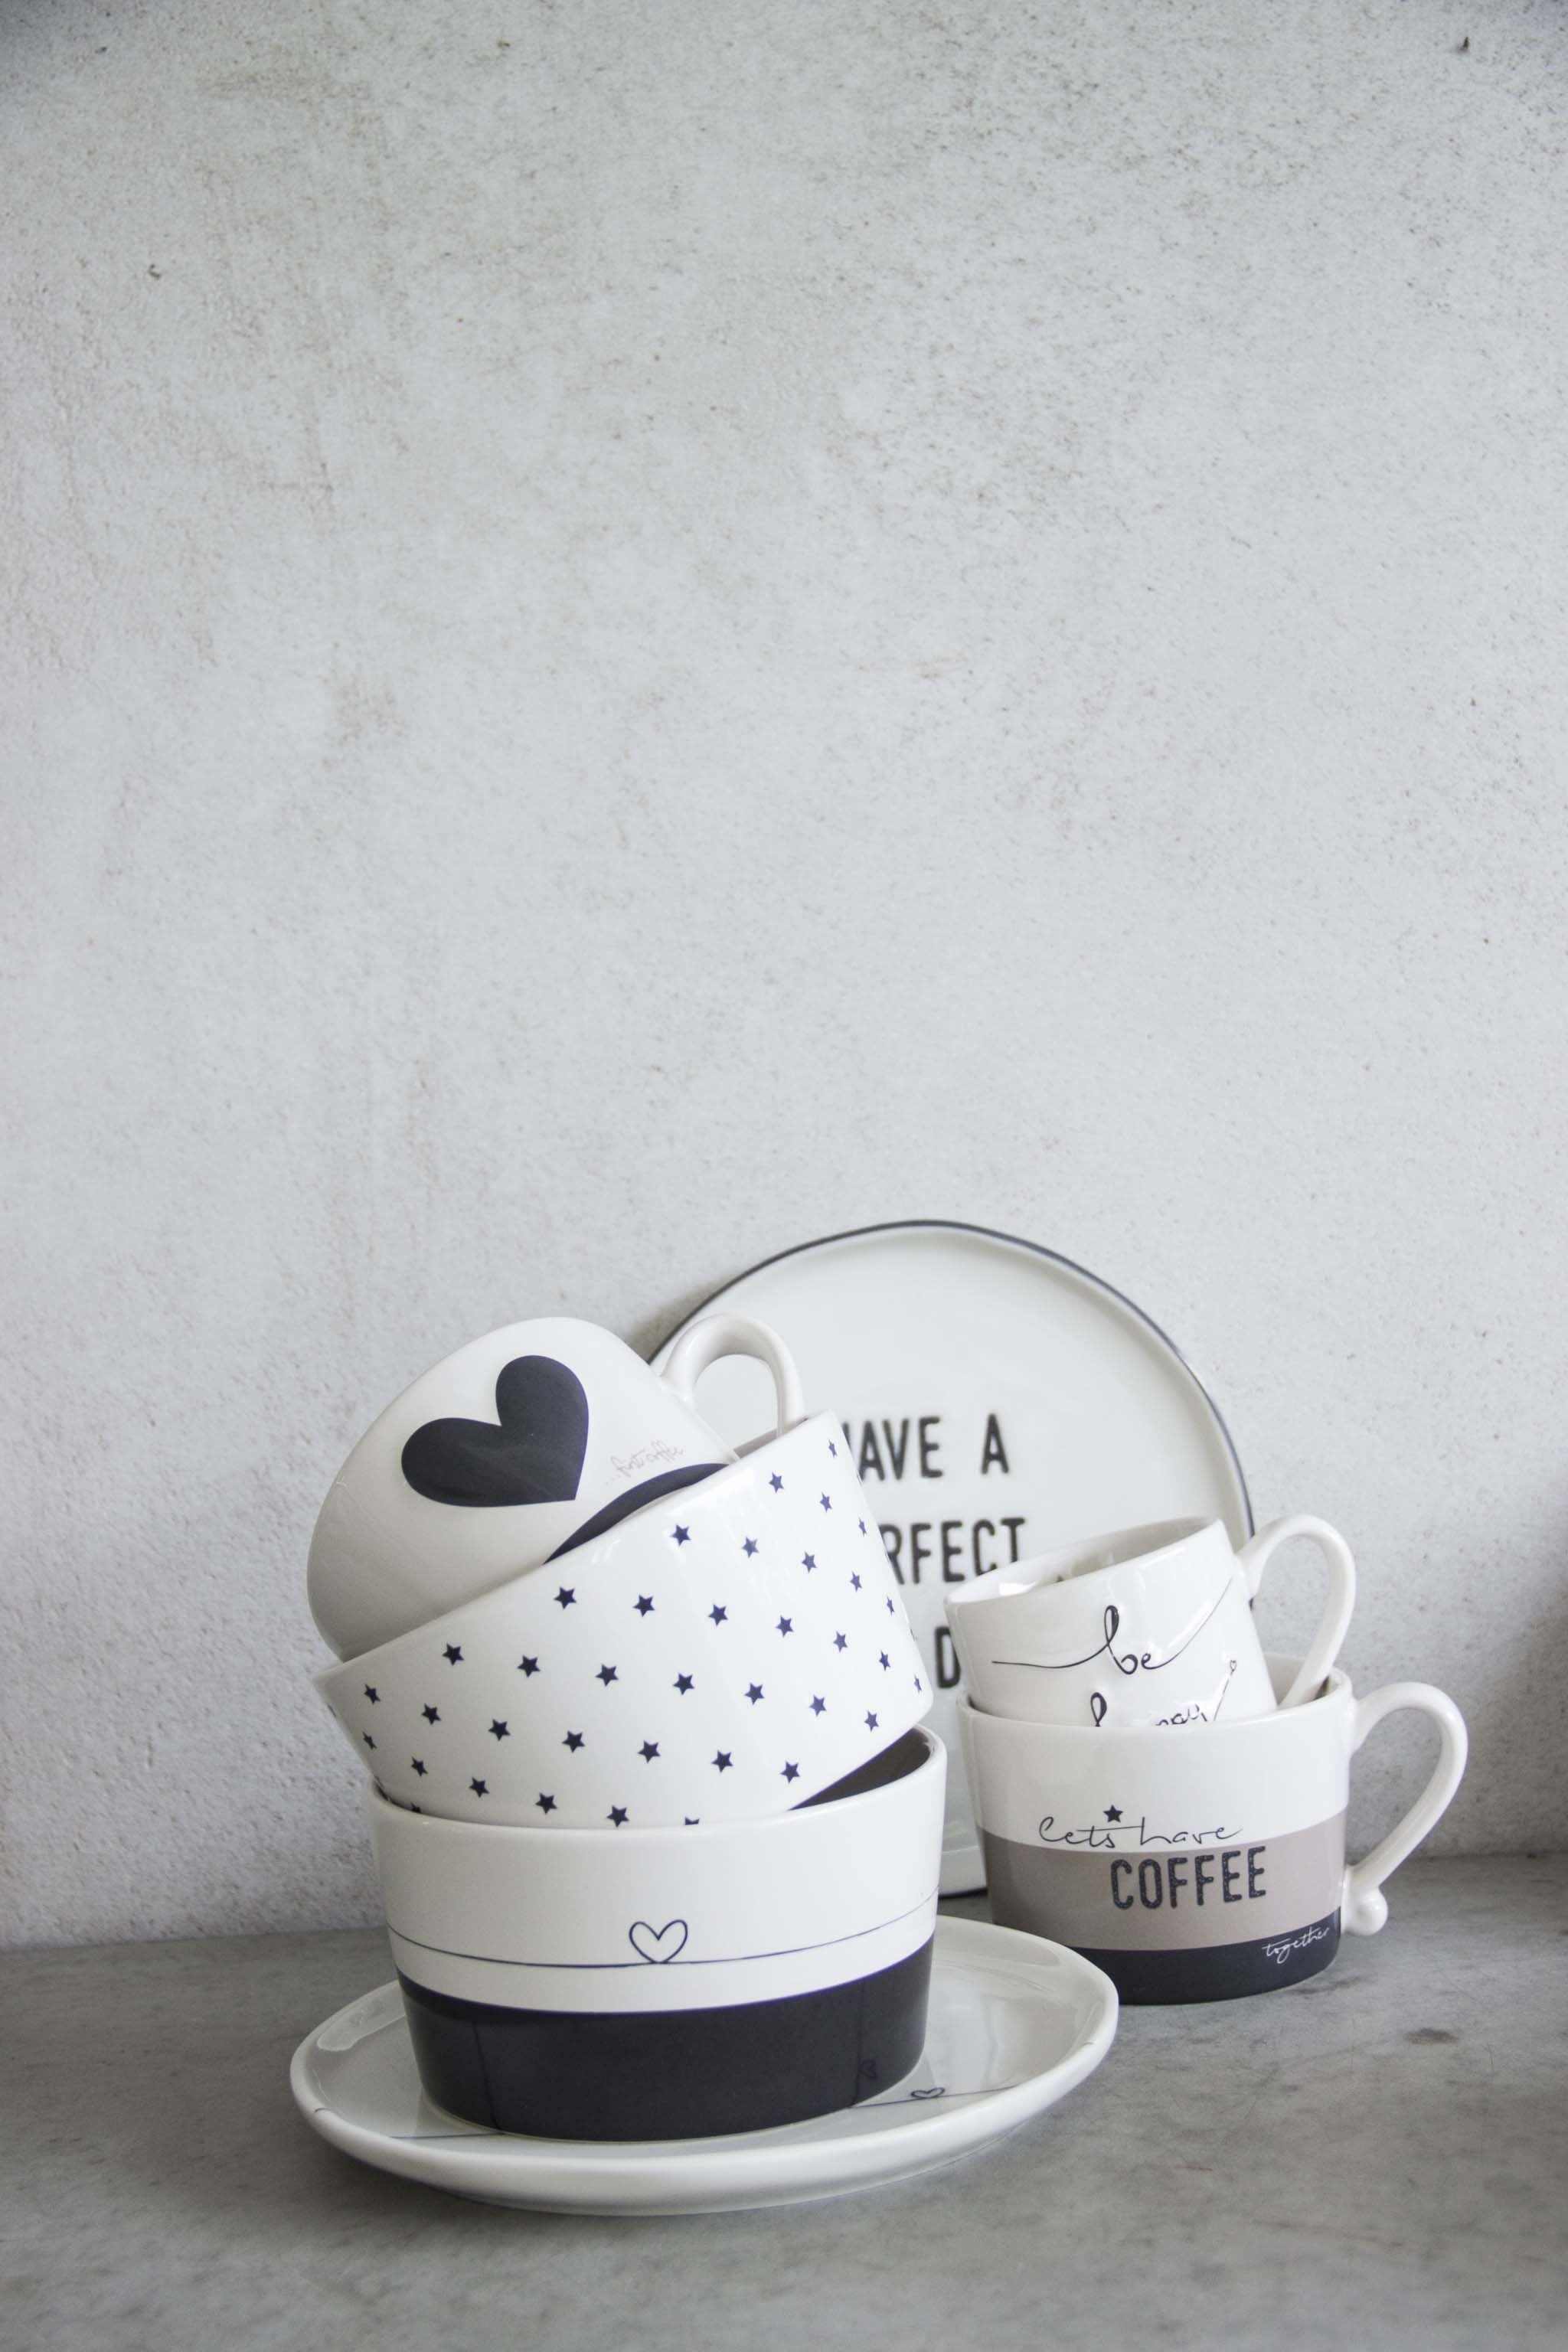 bc ceramics bc ceramics winter 2016 a cup of love pinterest servies geweldig en keuken. Black Bedroom Furniture Sets. Home Design Ideas